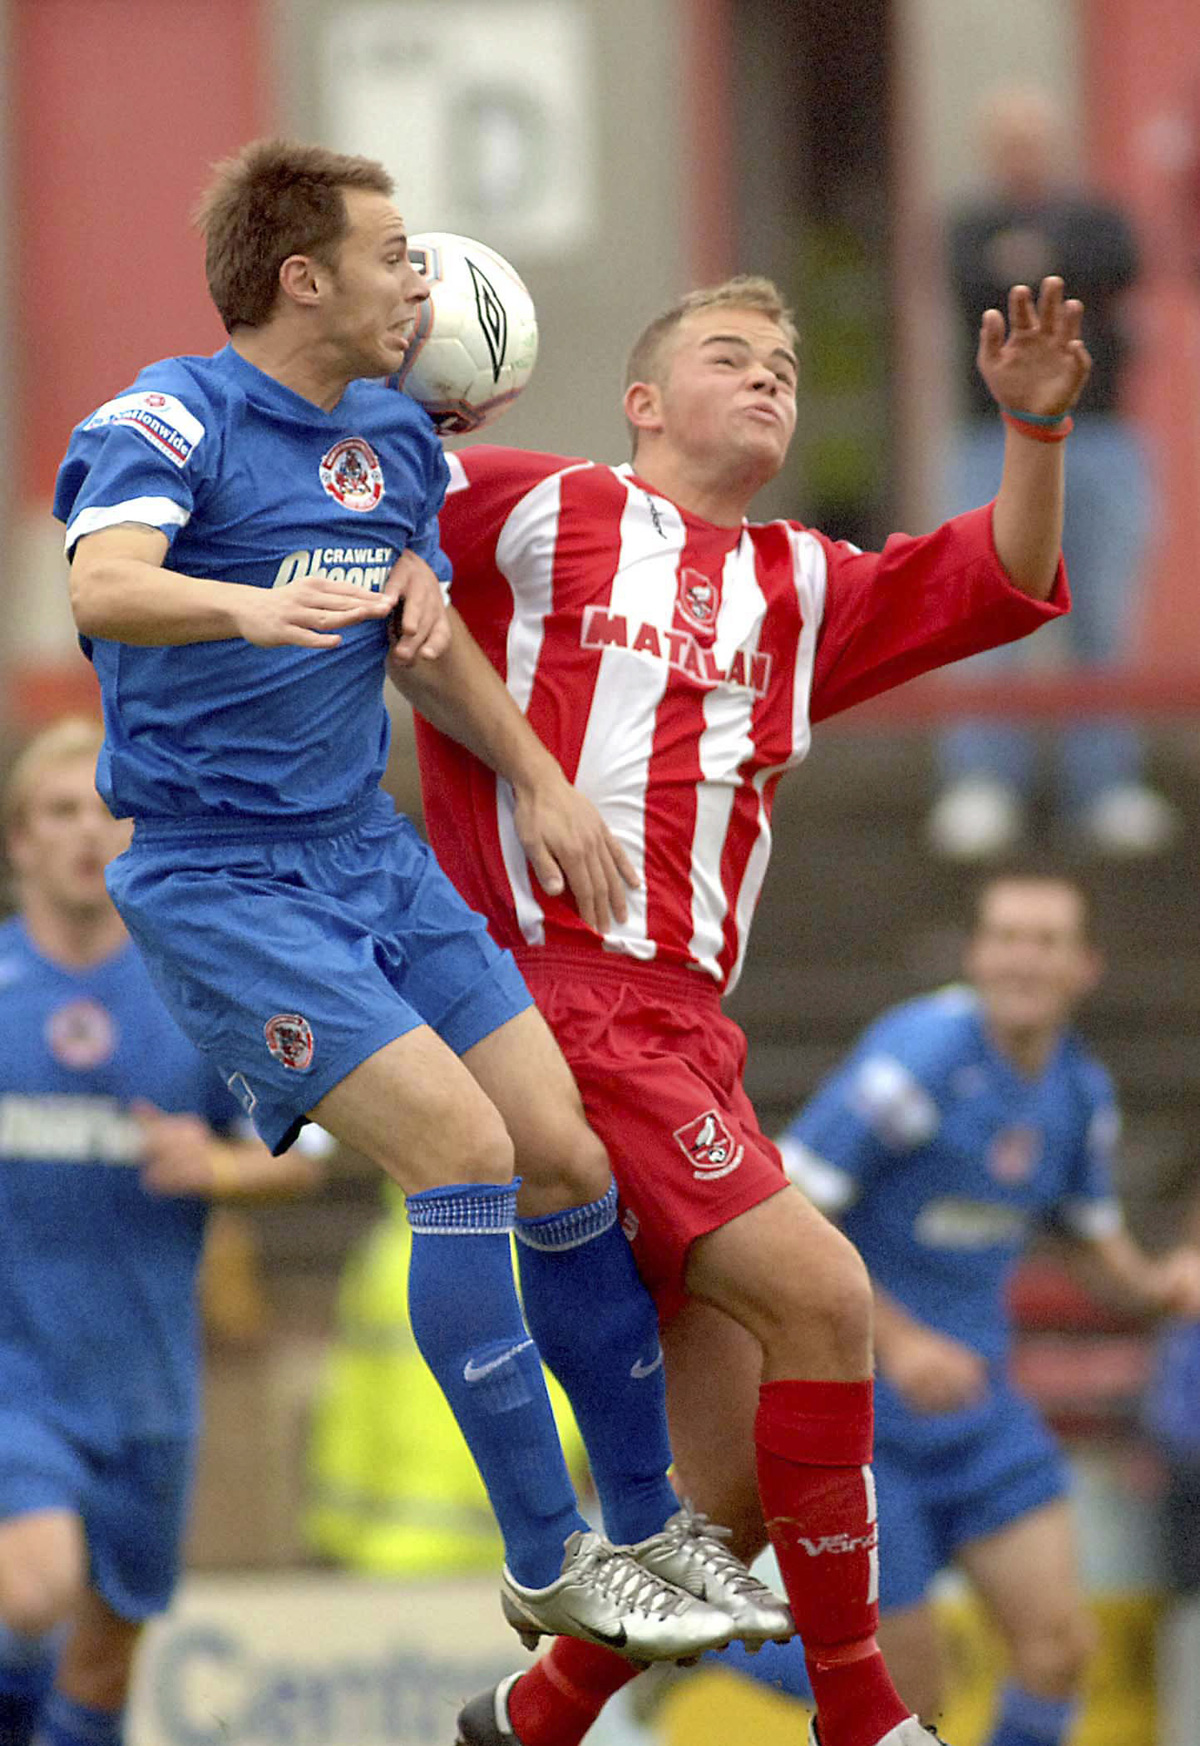 Jimmy Beadle, pictured, right, playing for Boro against Crawley as a teenager, has rejoined the Seadogs